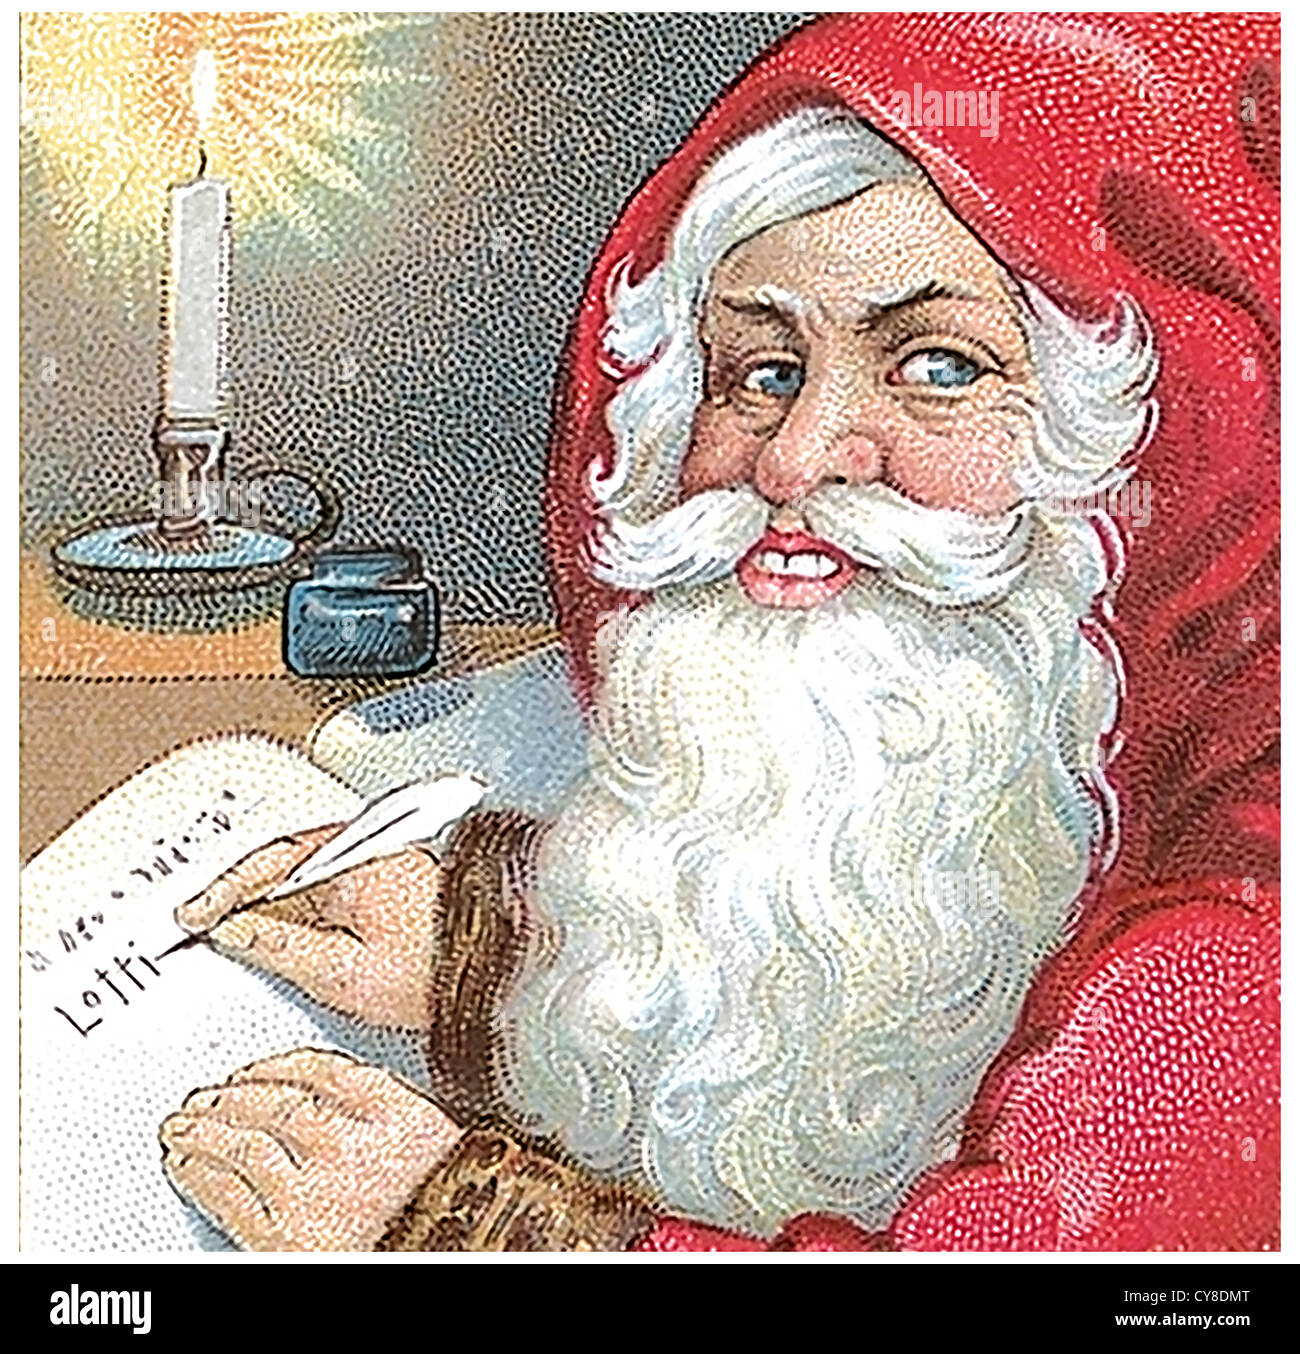 Santa Claus Christmas wishes listed - Stock Image